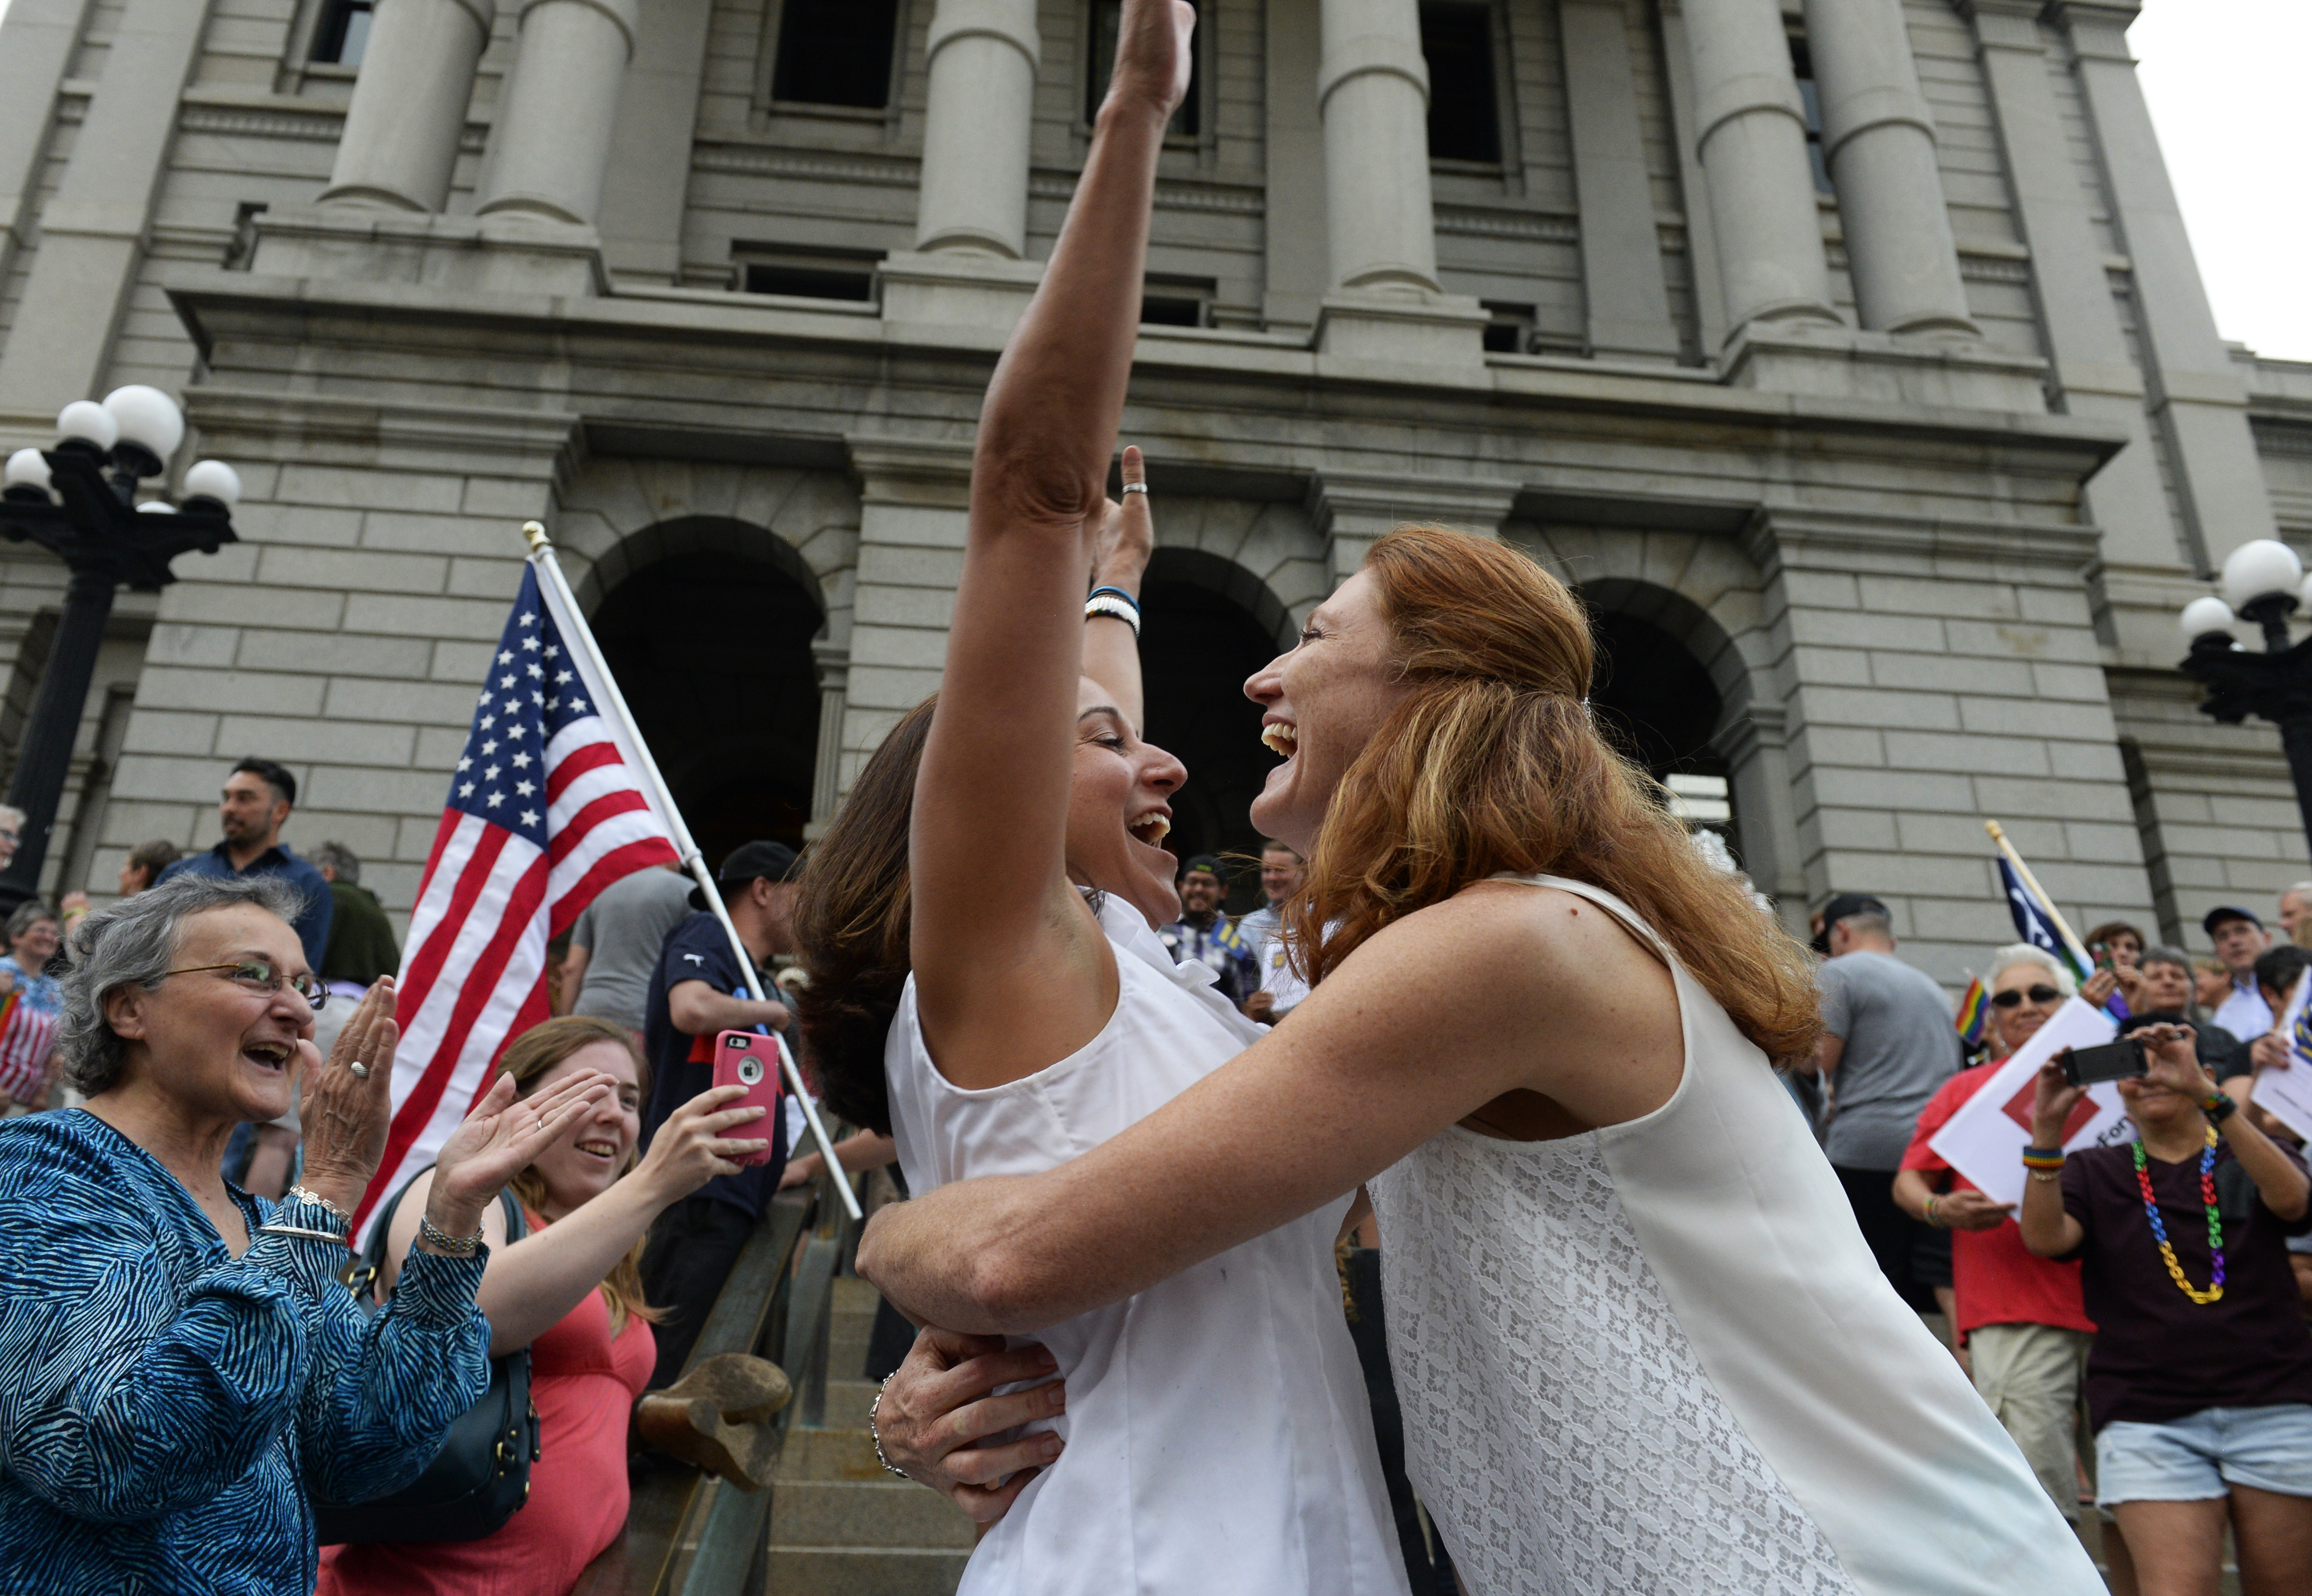 DENVER, CO - JUNE 26: Stephanie Santorico, left, and her wife, Diane Santorico celebrate moments after they married on the west steps of the Colorado State Capitol during a rally celebrating the Supreme Court's ruling giving same-sex couples the right to marry nationwide. June 26, 2015. (Photo by Andy Cross/The Denver Post)